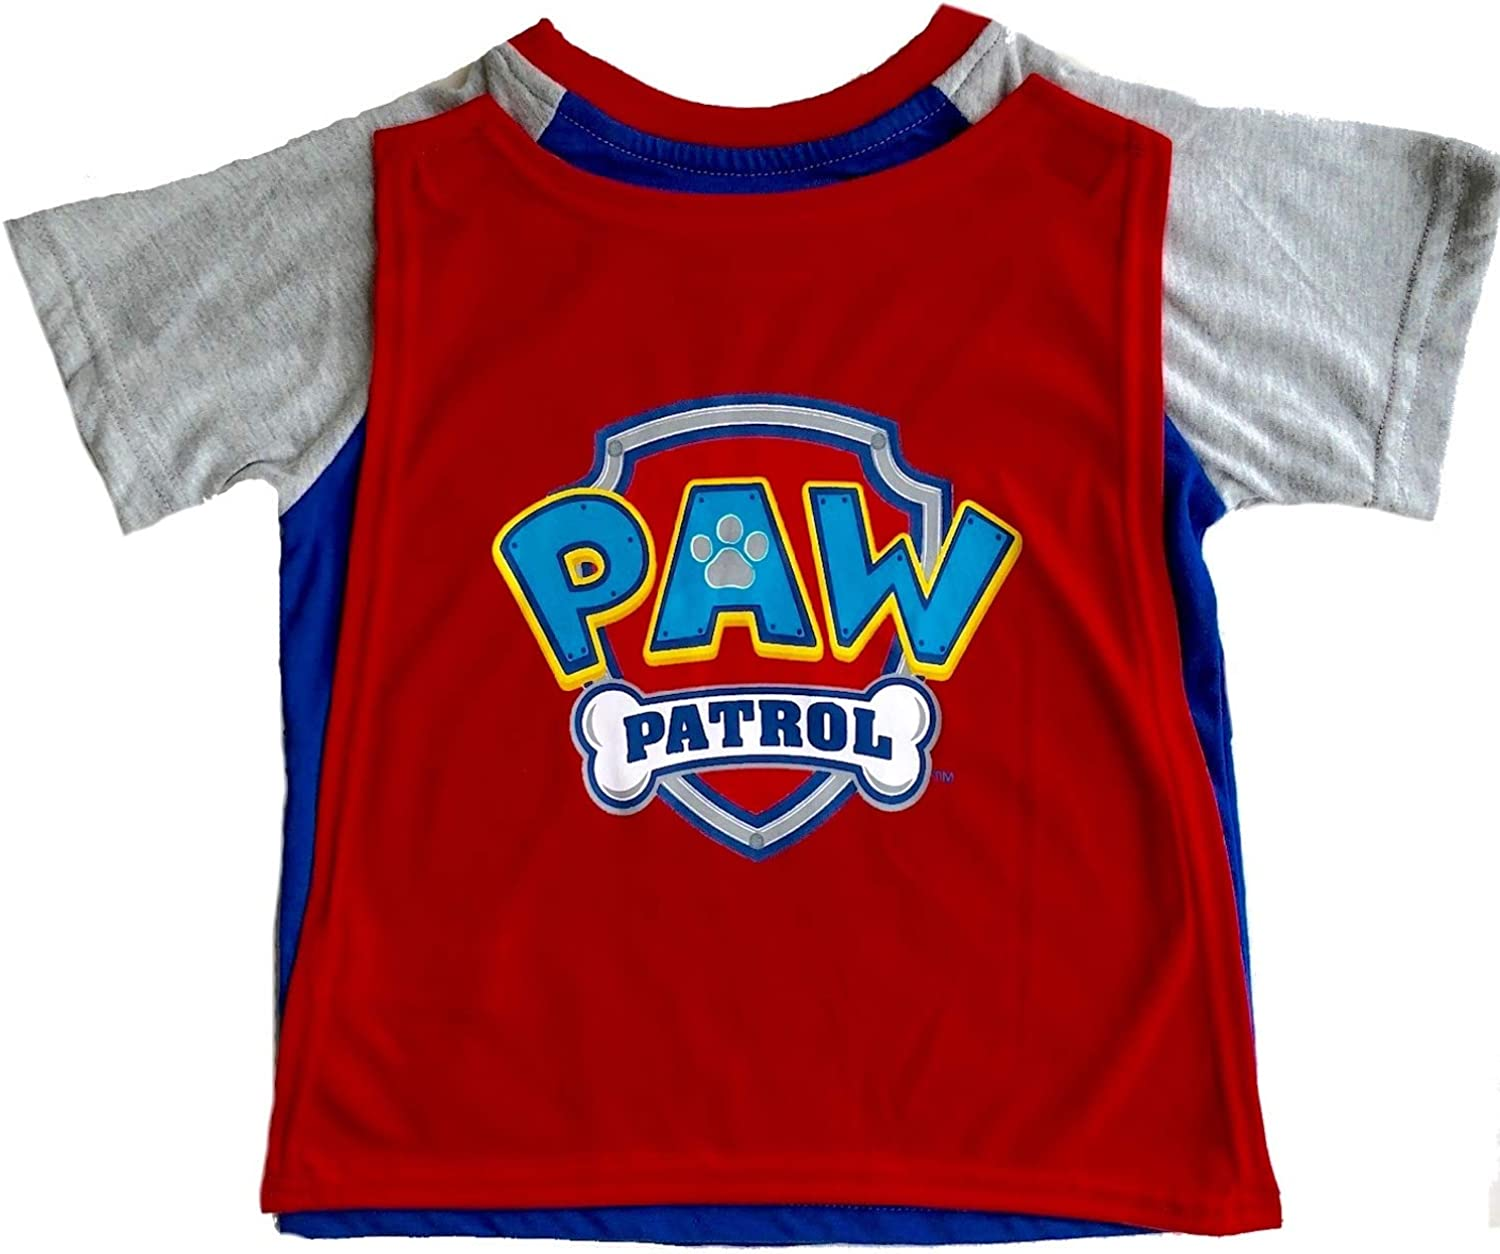 Paw Patrol Toddler Boys Ready For Action T-Shirt With Cape